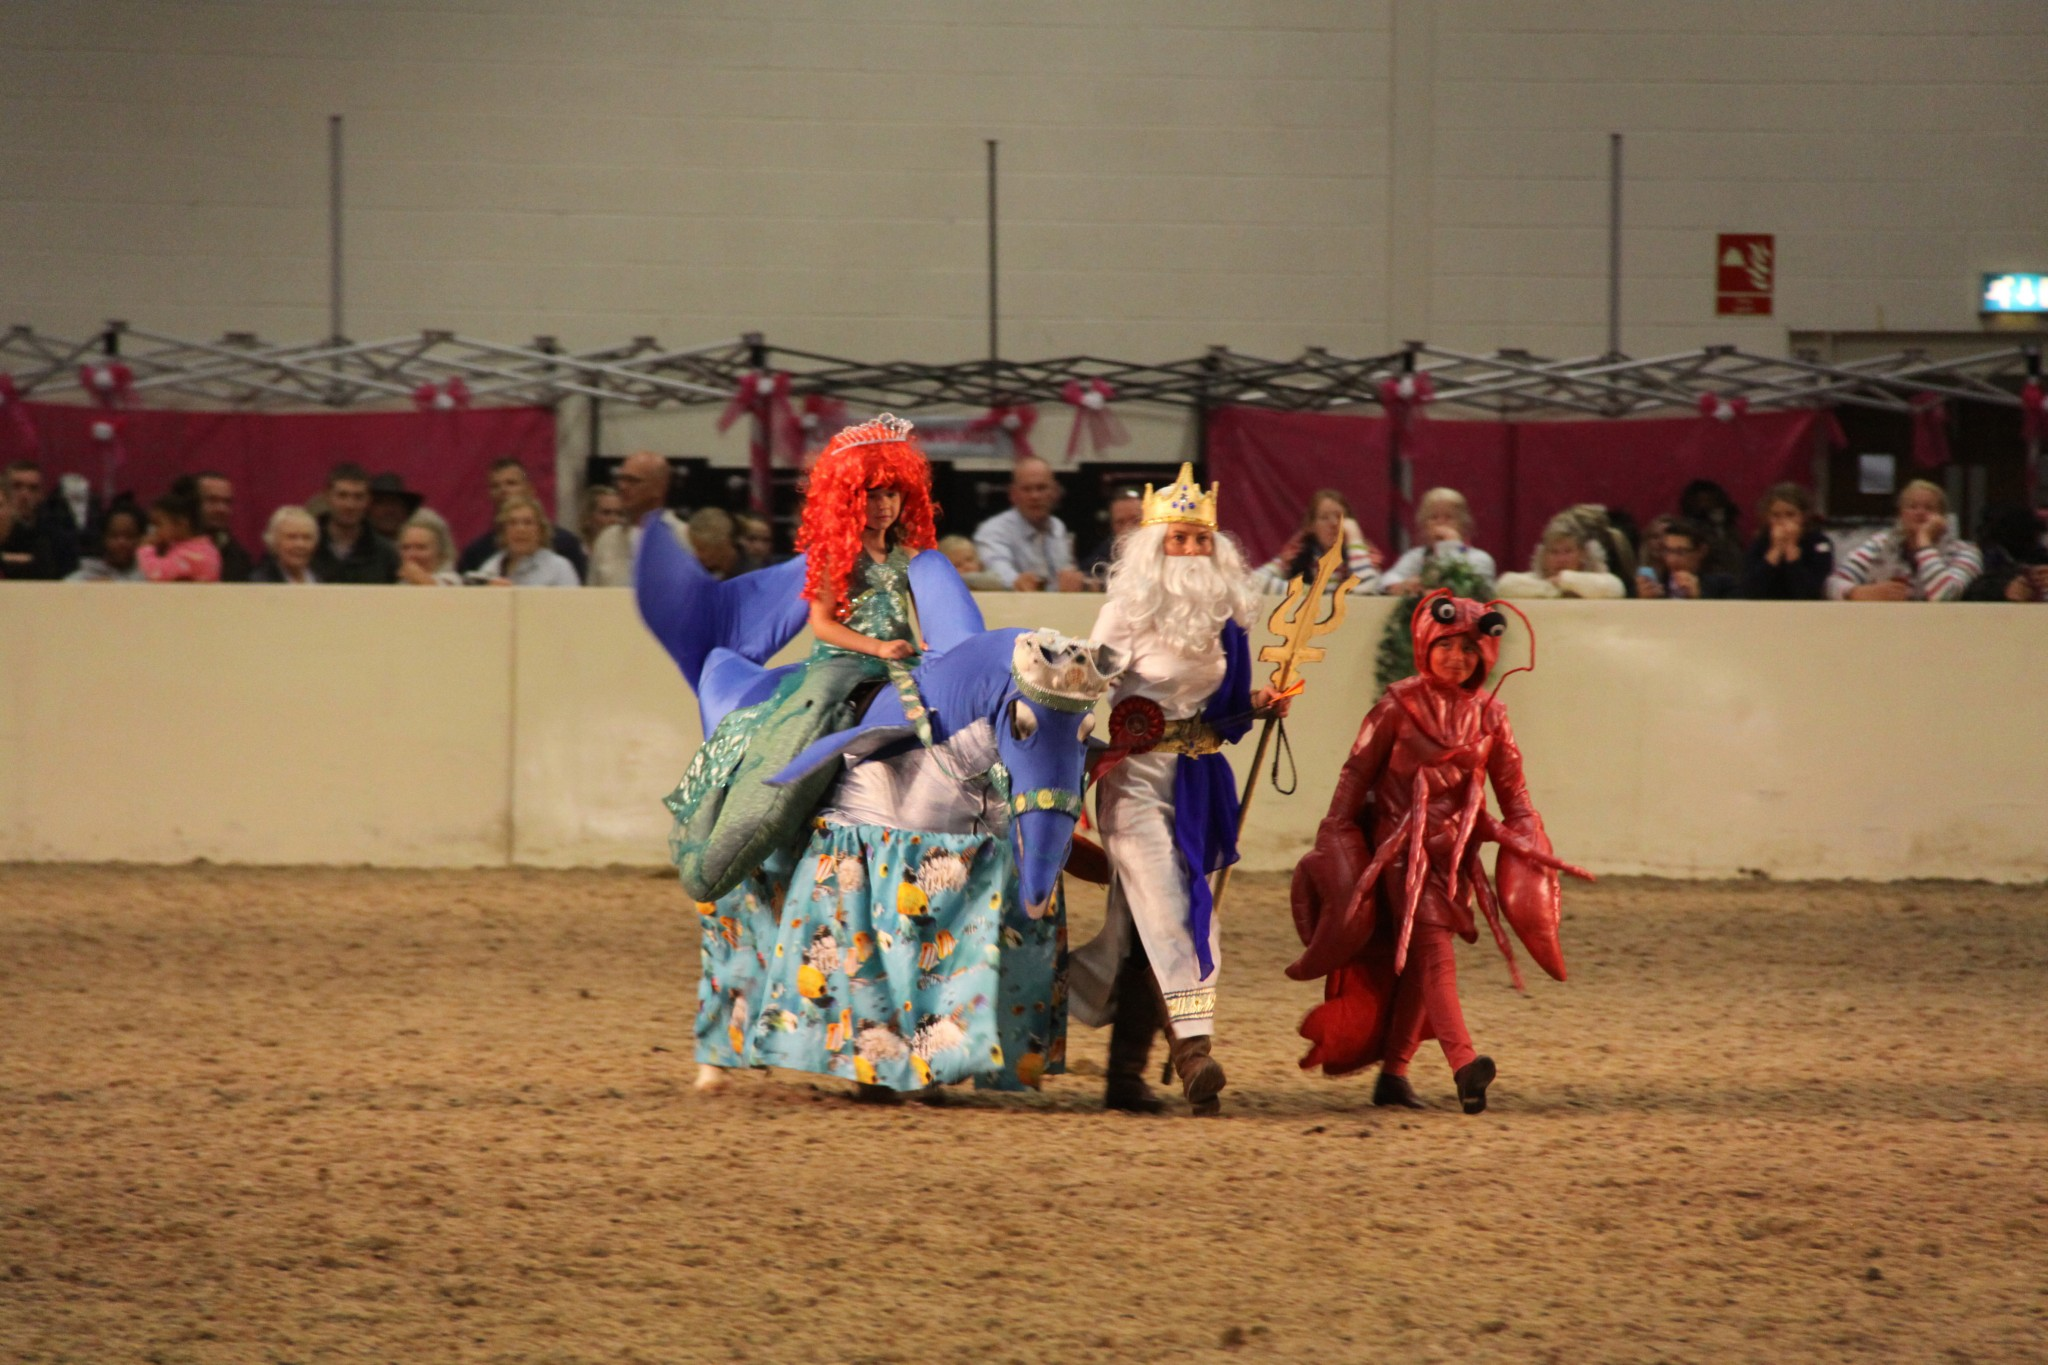 Equifest fancy dress - Be the Fanciest Dressed at Equifest 2016